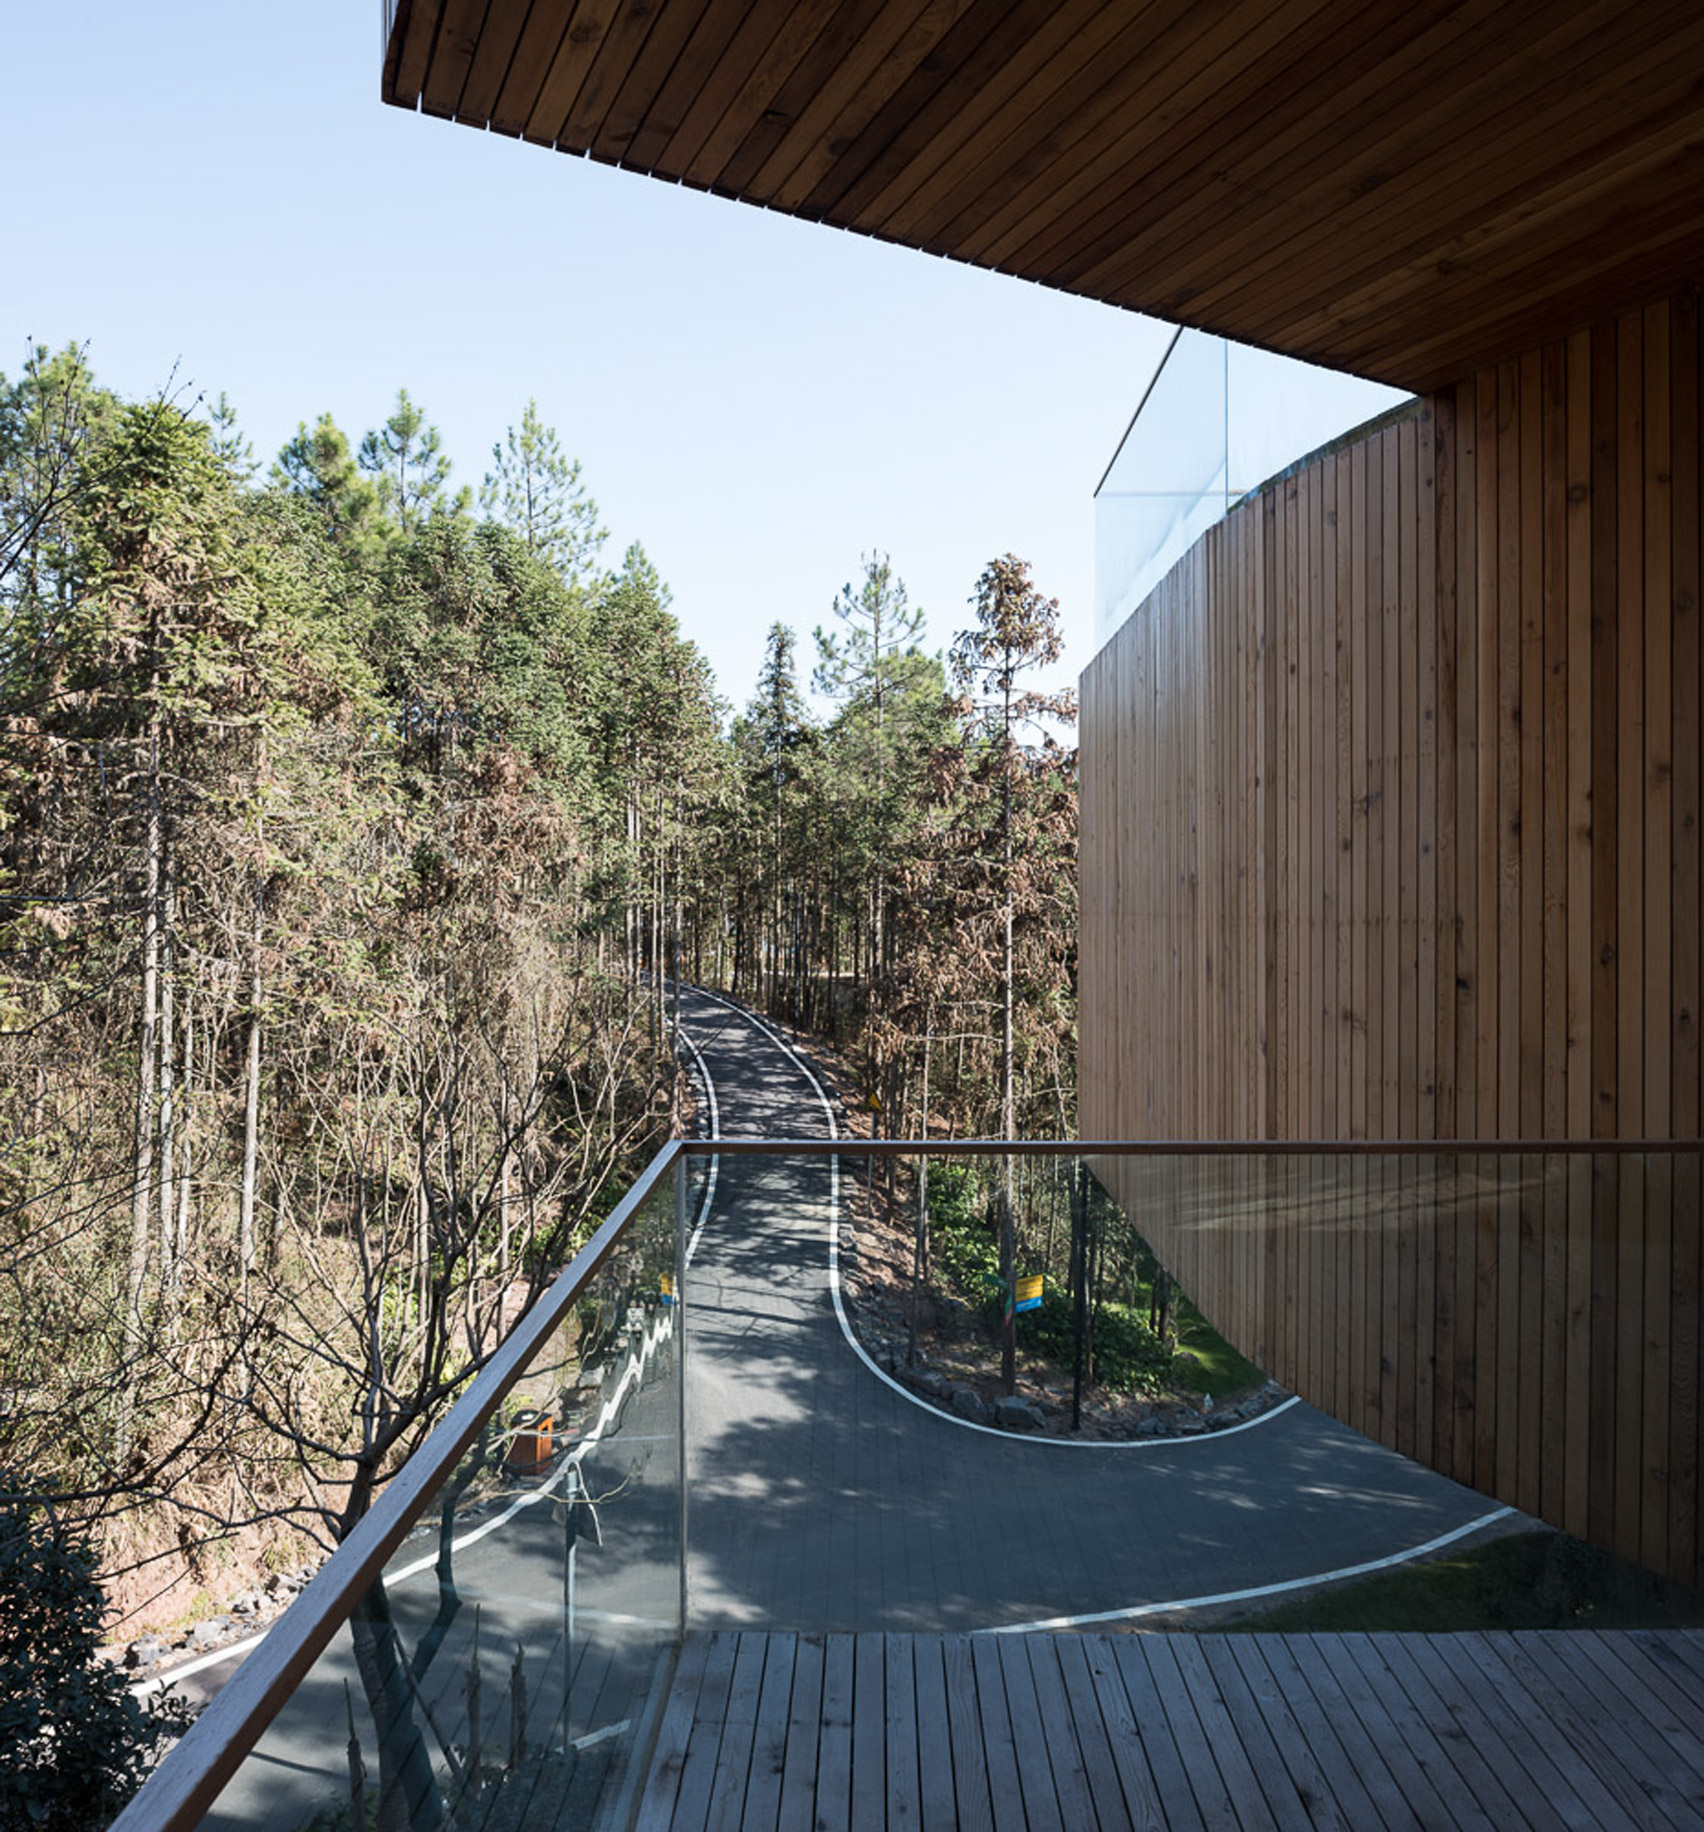 Spiral house by Bengo Studio